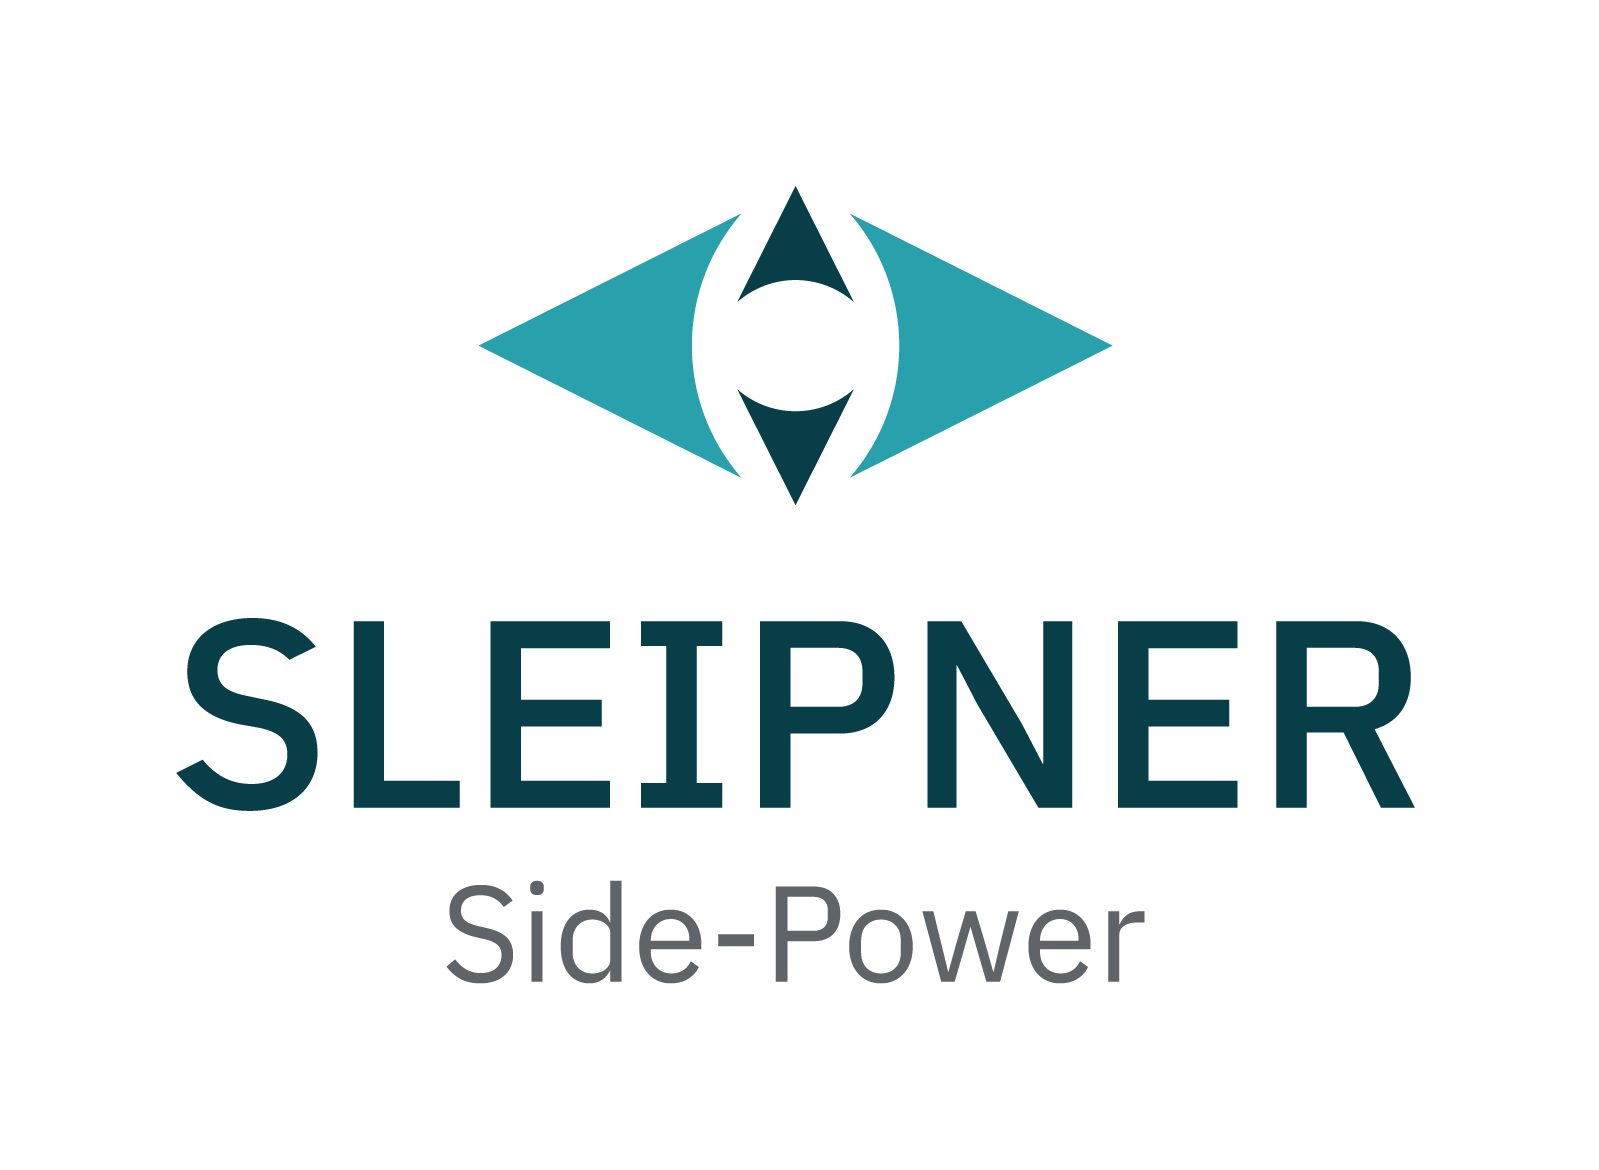 Side-Power or Sleipner, What is the Difference?